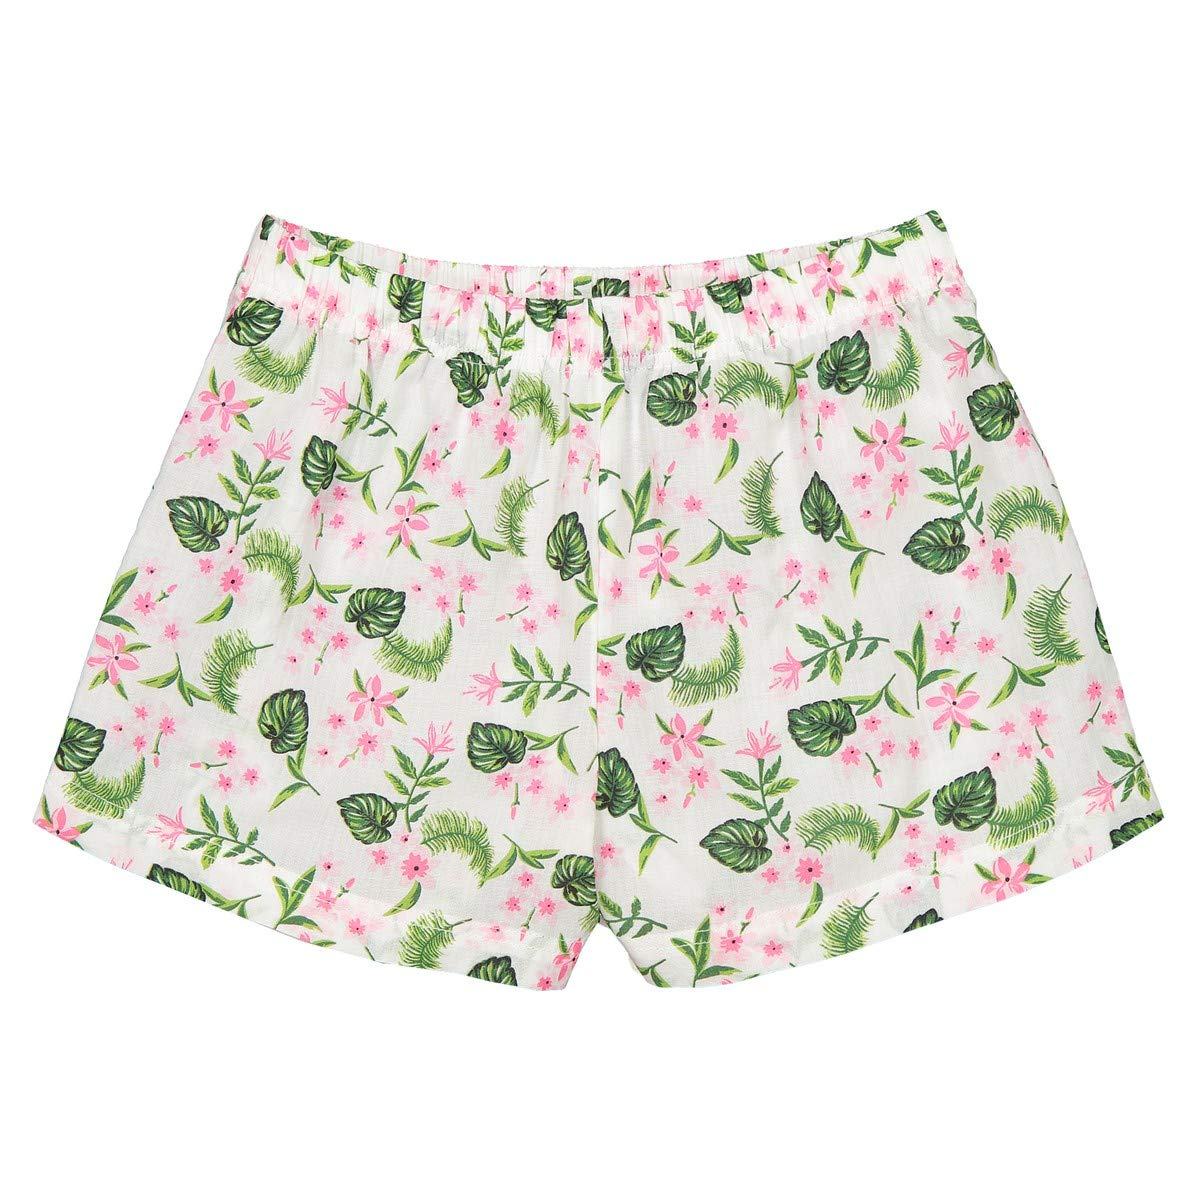 La Redoute Collections Big Girls Floral Print Short Pyjamas 3-12 Years